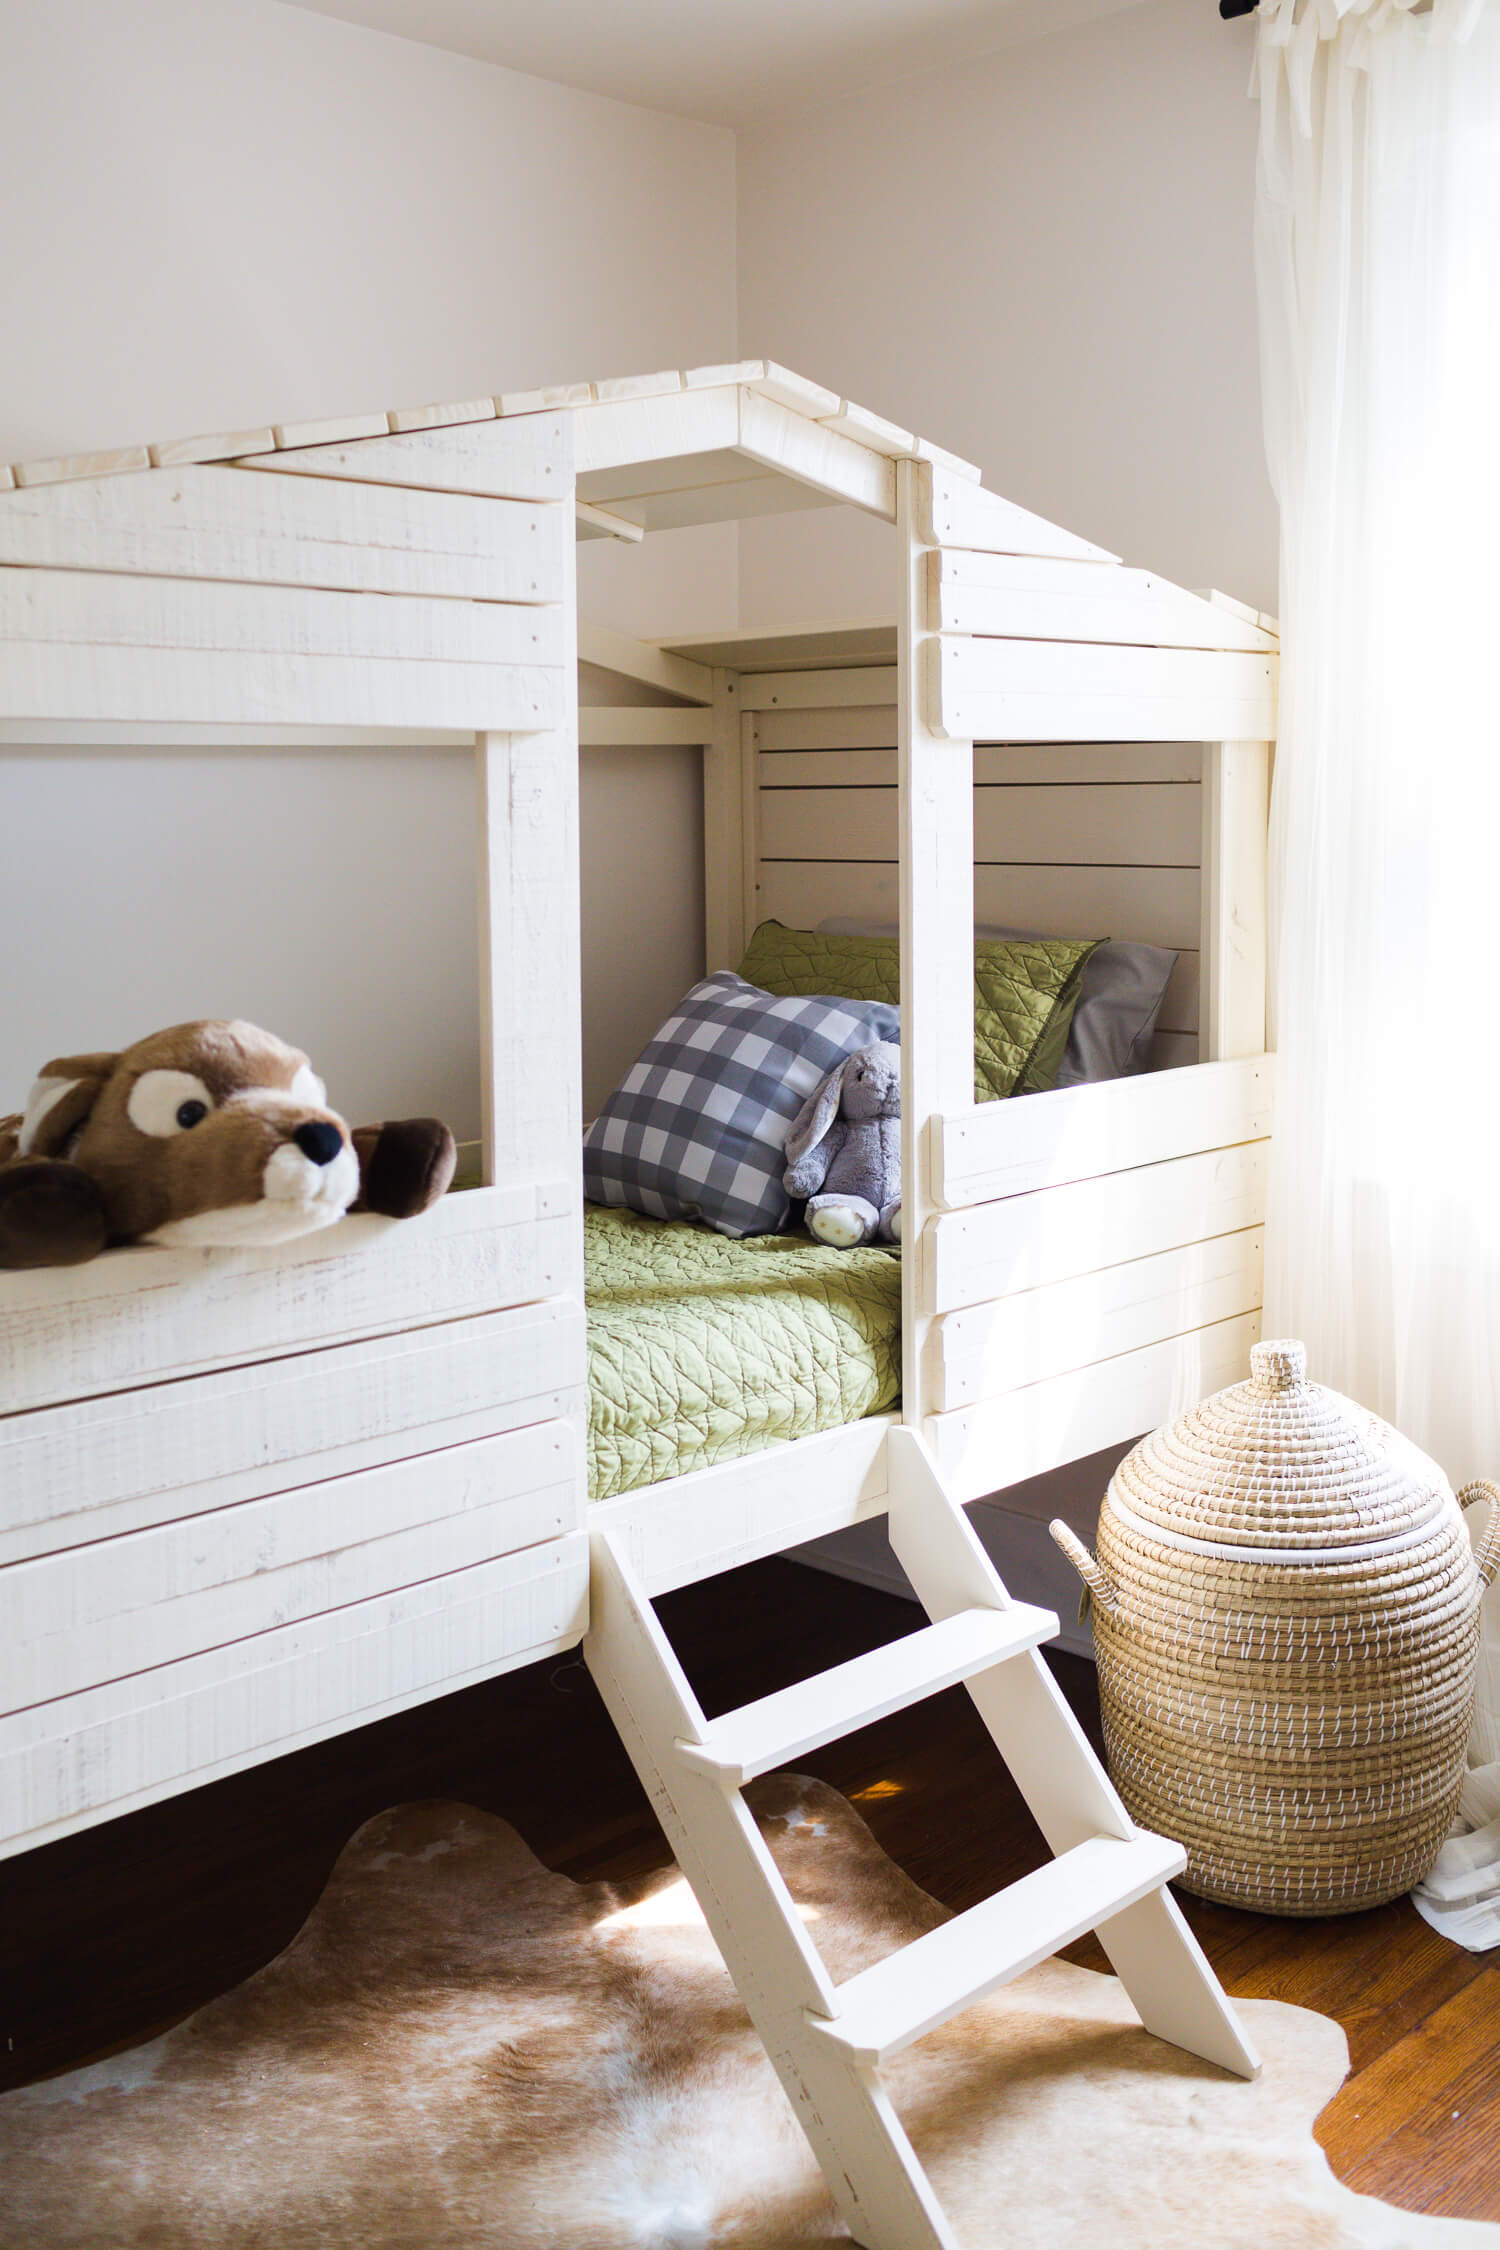 Welcome To Our Treehouse- a guest room for kids via A Beautiful Mess